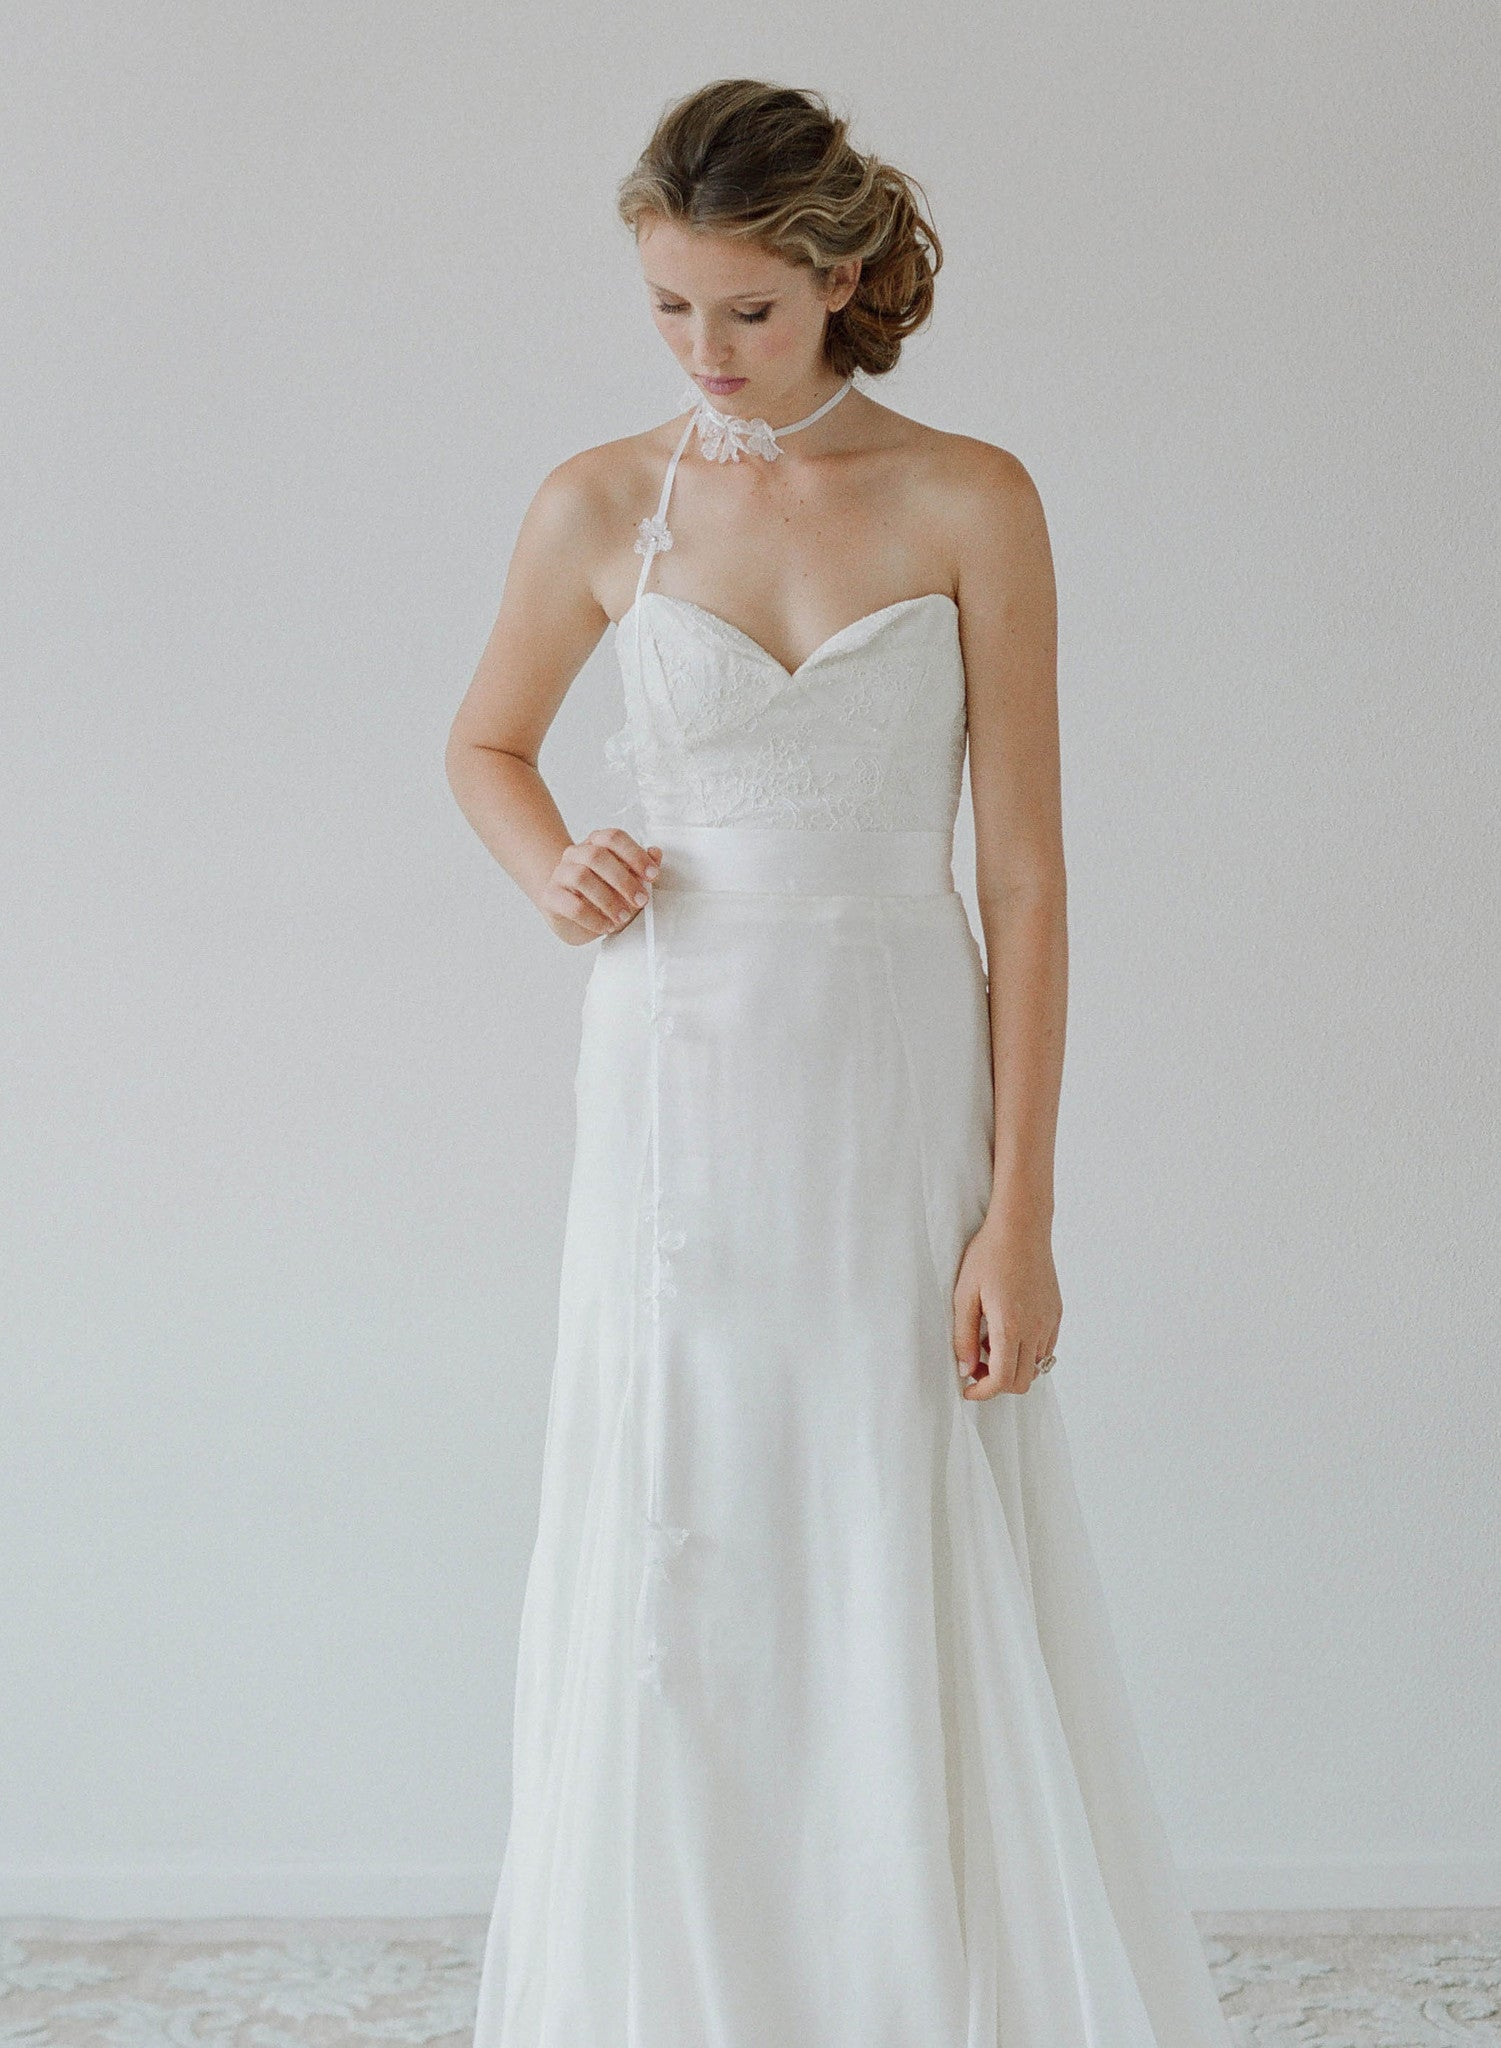 Separates Bridal Separates Lace Tops Tulle Skirts Twigs